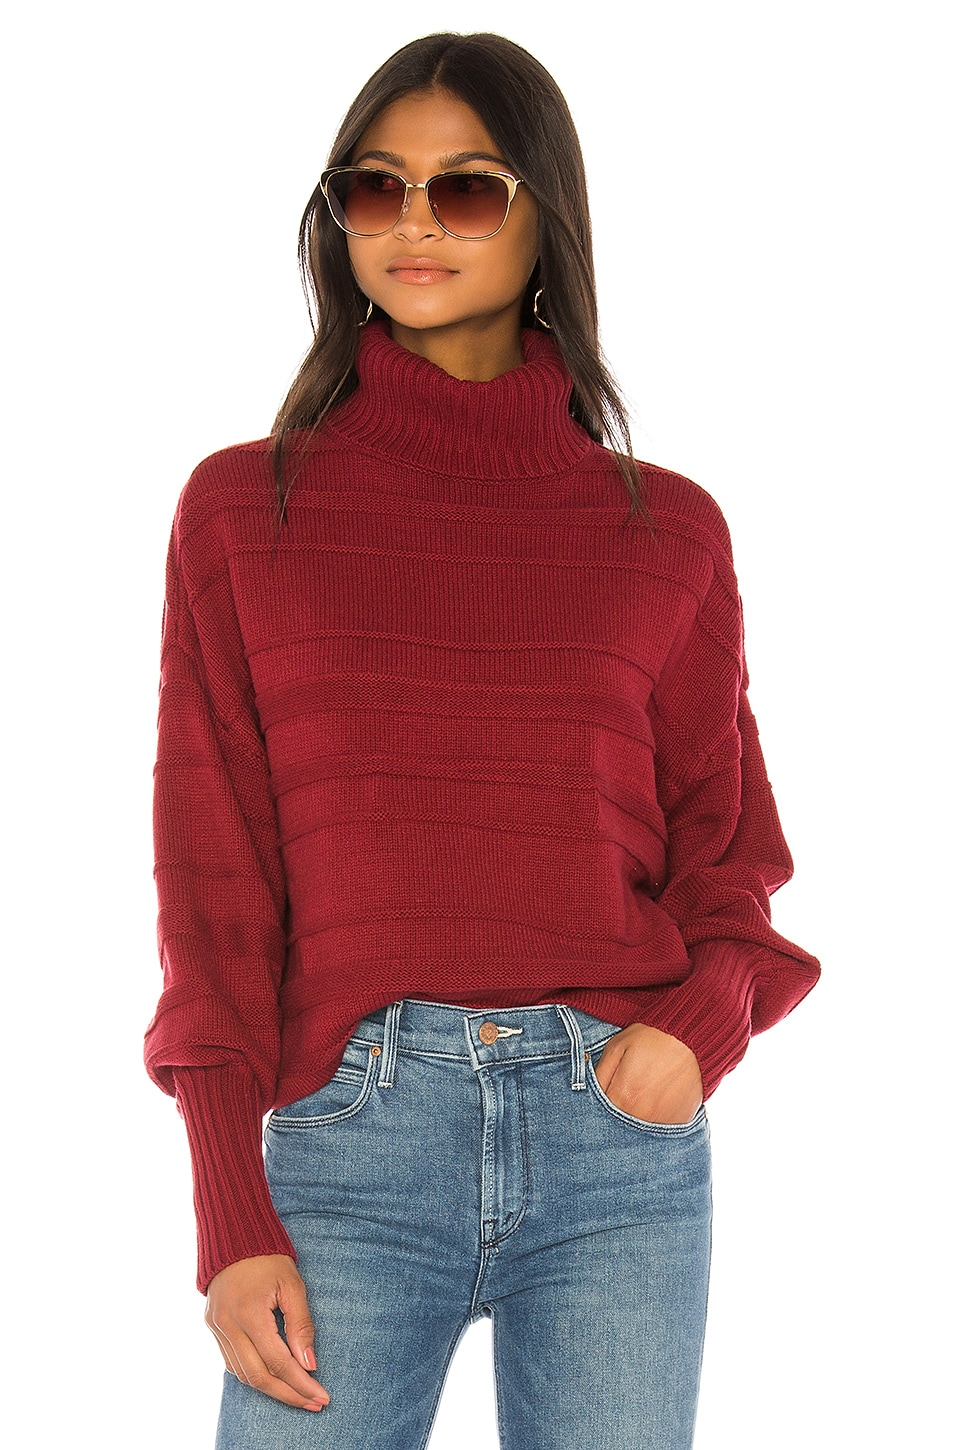 House of Harlow 1960 x REVOLVE Torin Sweater in Burgundy